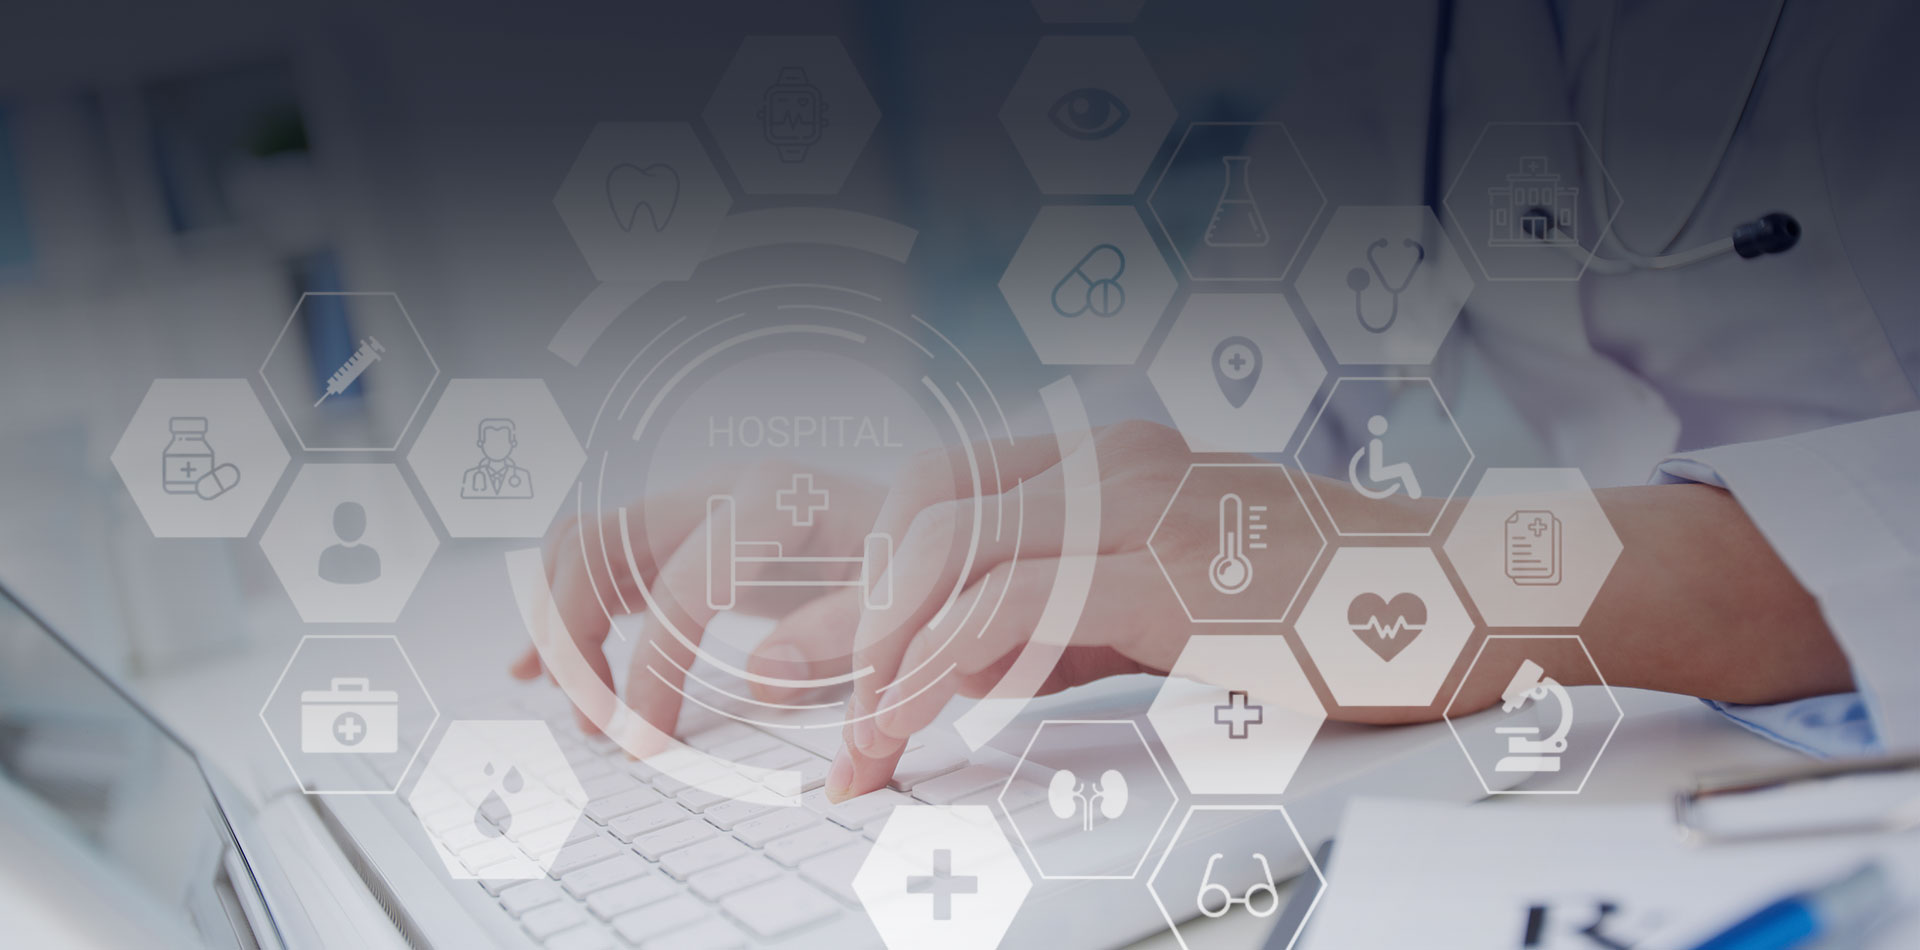 Healthcare management system software solutions services